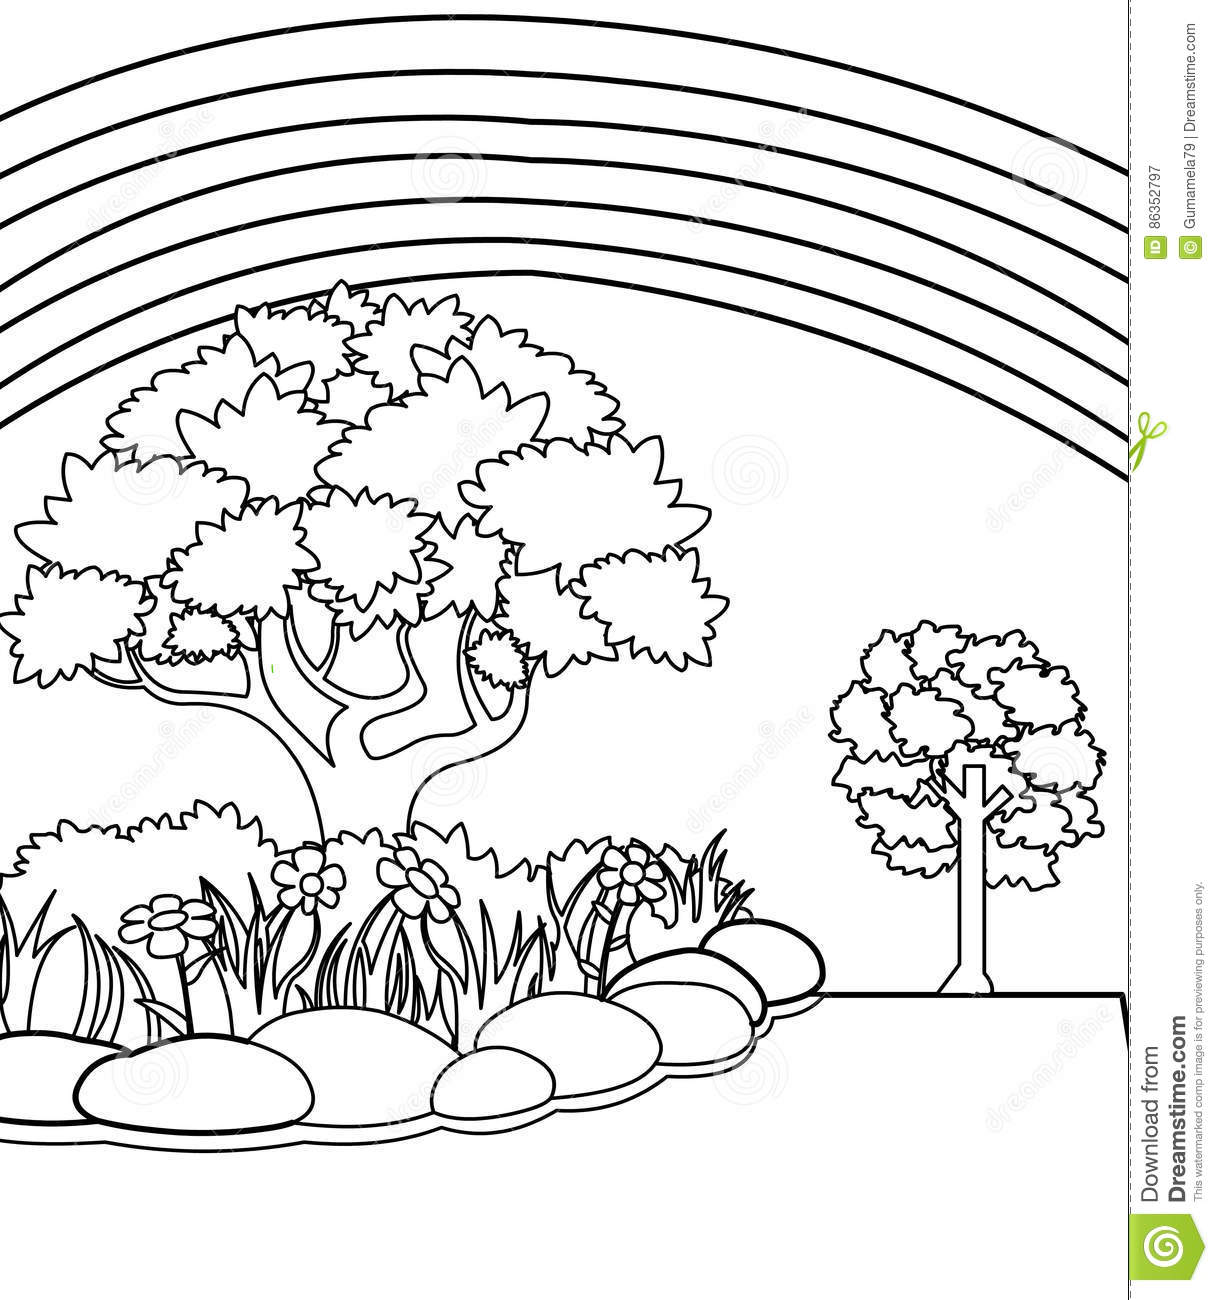 Coloring pictures of flowers and trees - Download